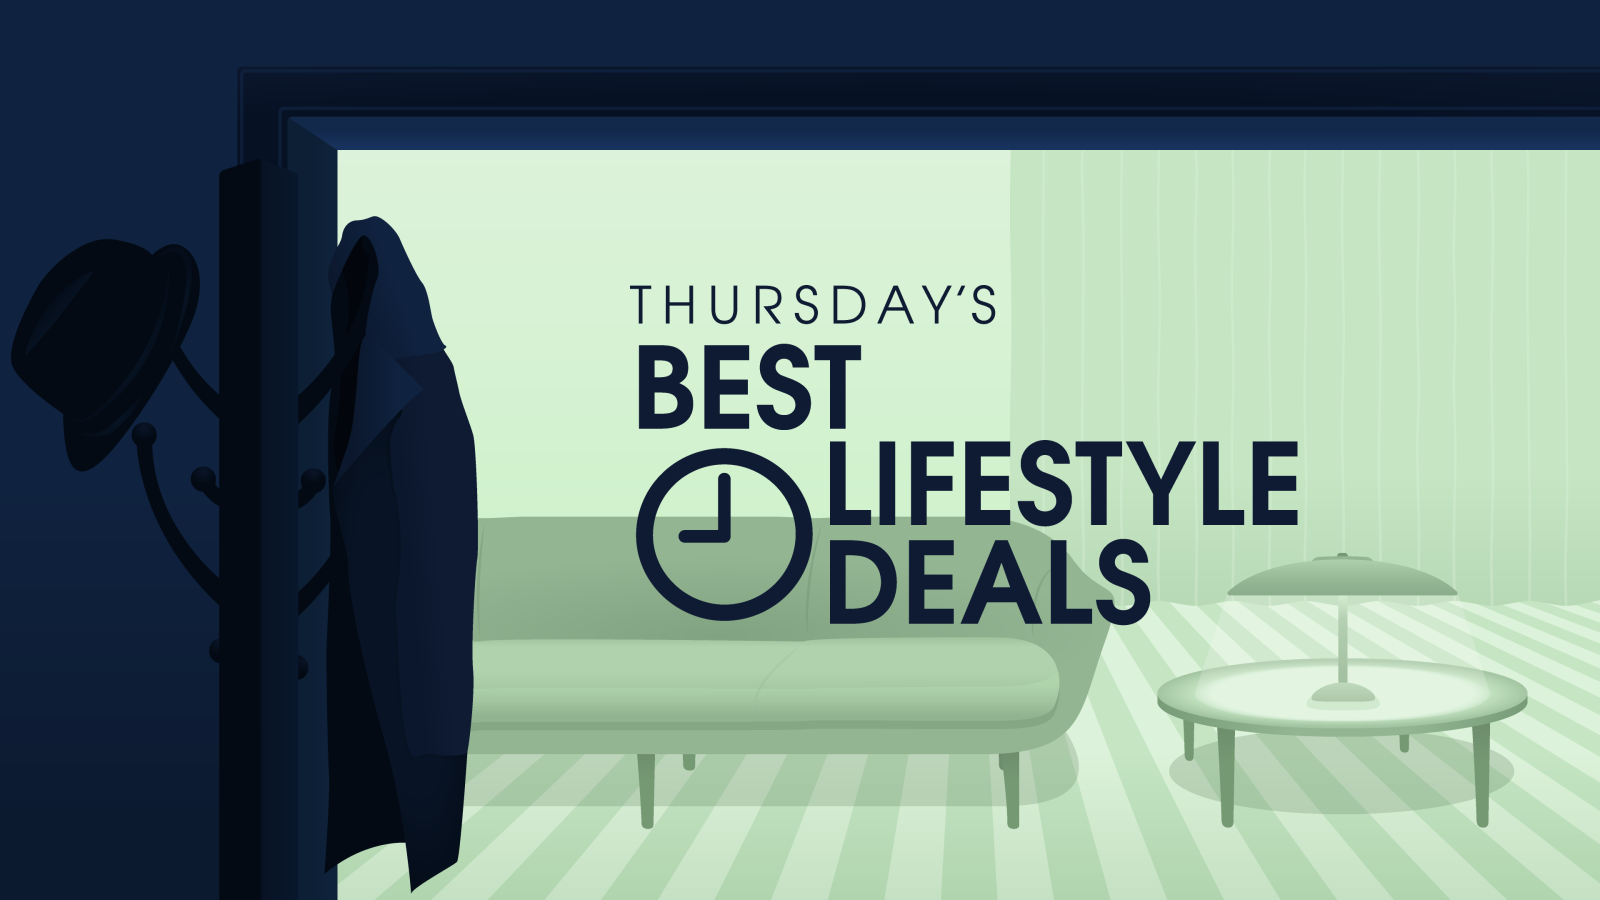 Thursday's Best Lifestyle Deals: Enso Silicone Rings, PUMA, TOMS Flash Sale, more